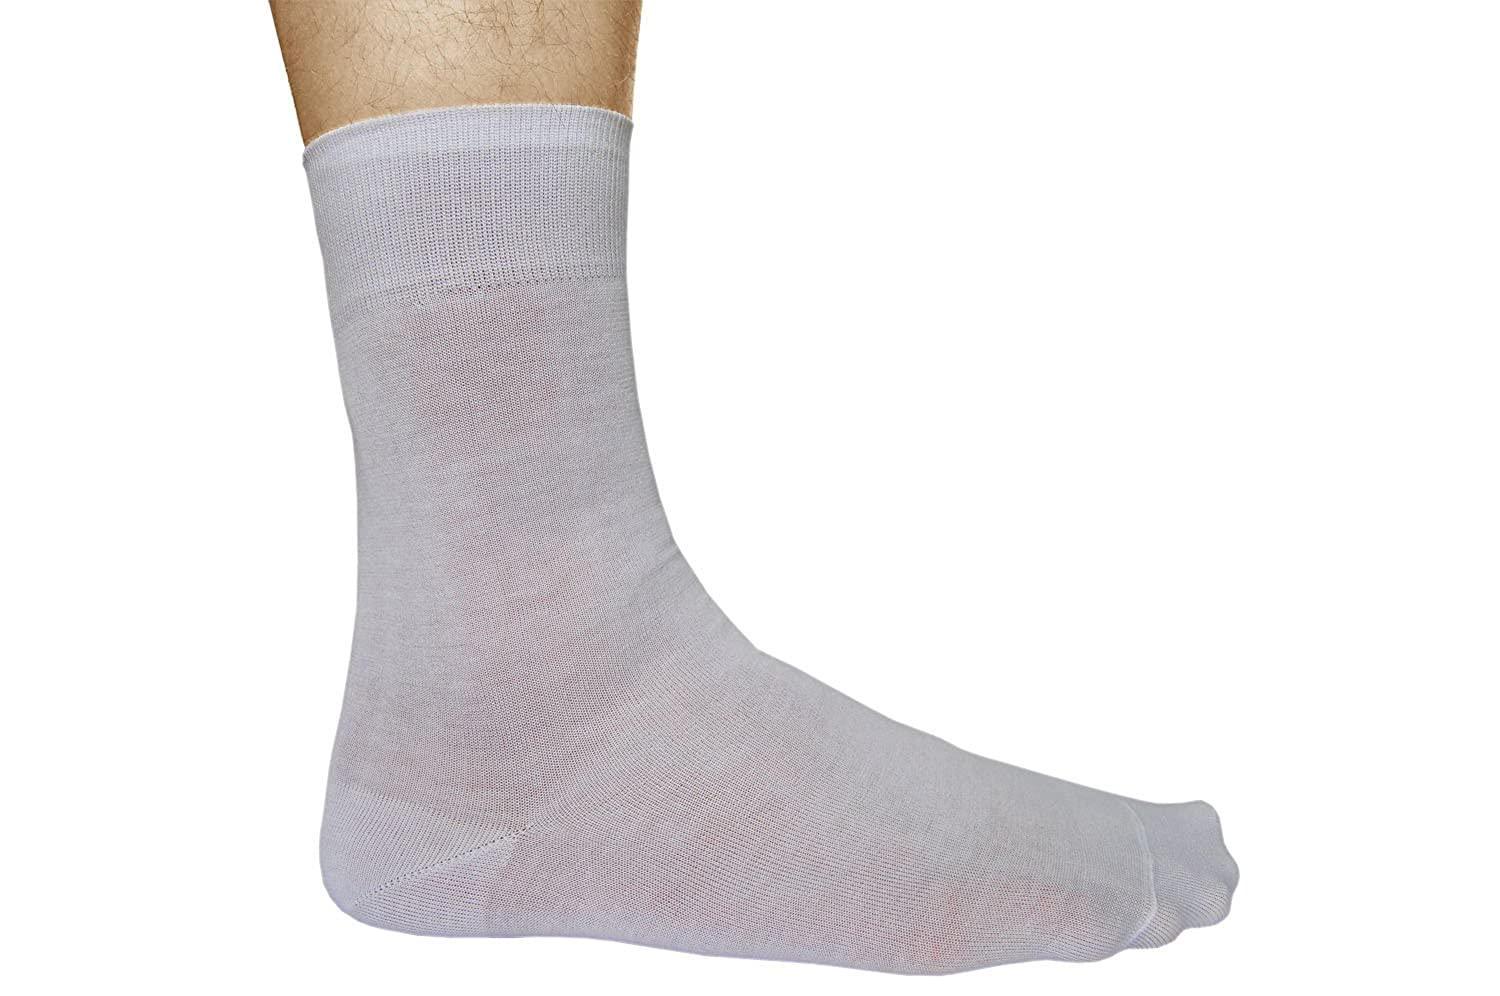 White Socks for Men 100 Cotton (3 PAIRS) Plain Thin Soft Comfy, Vitsocks Casual at Amazon Mens Clothing store: